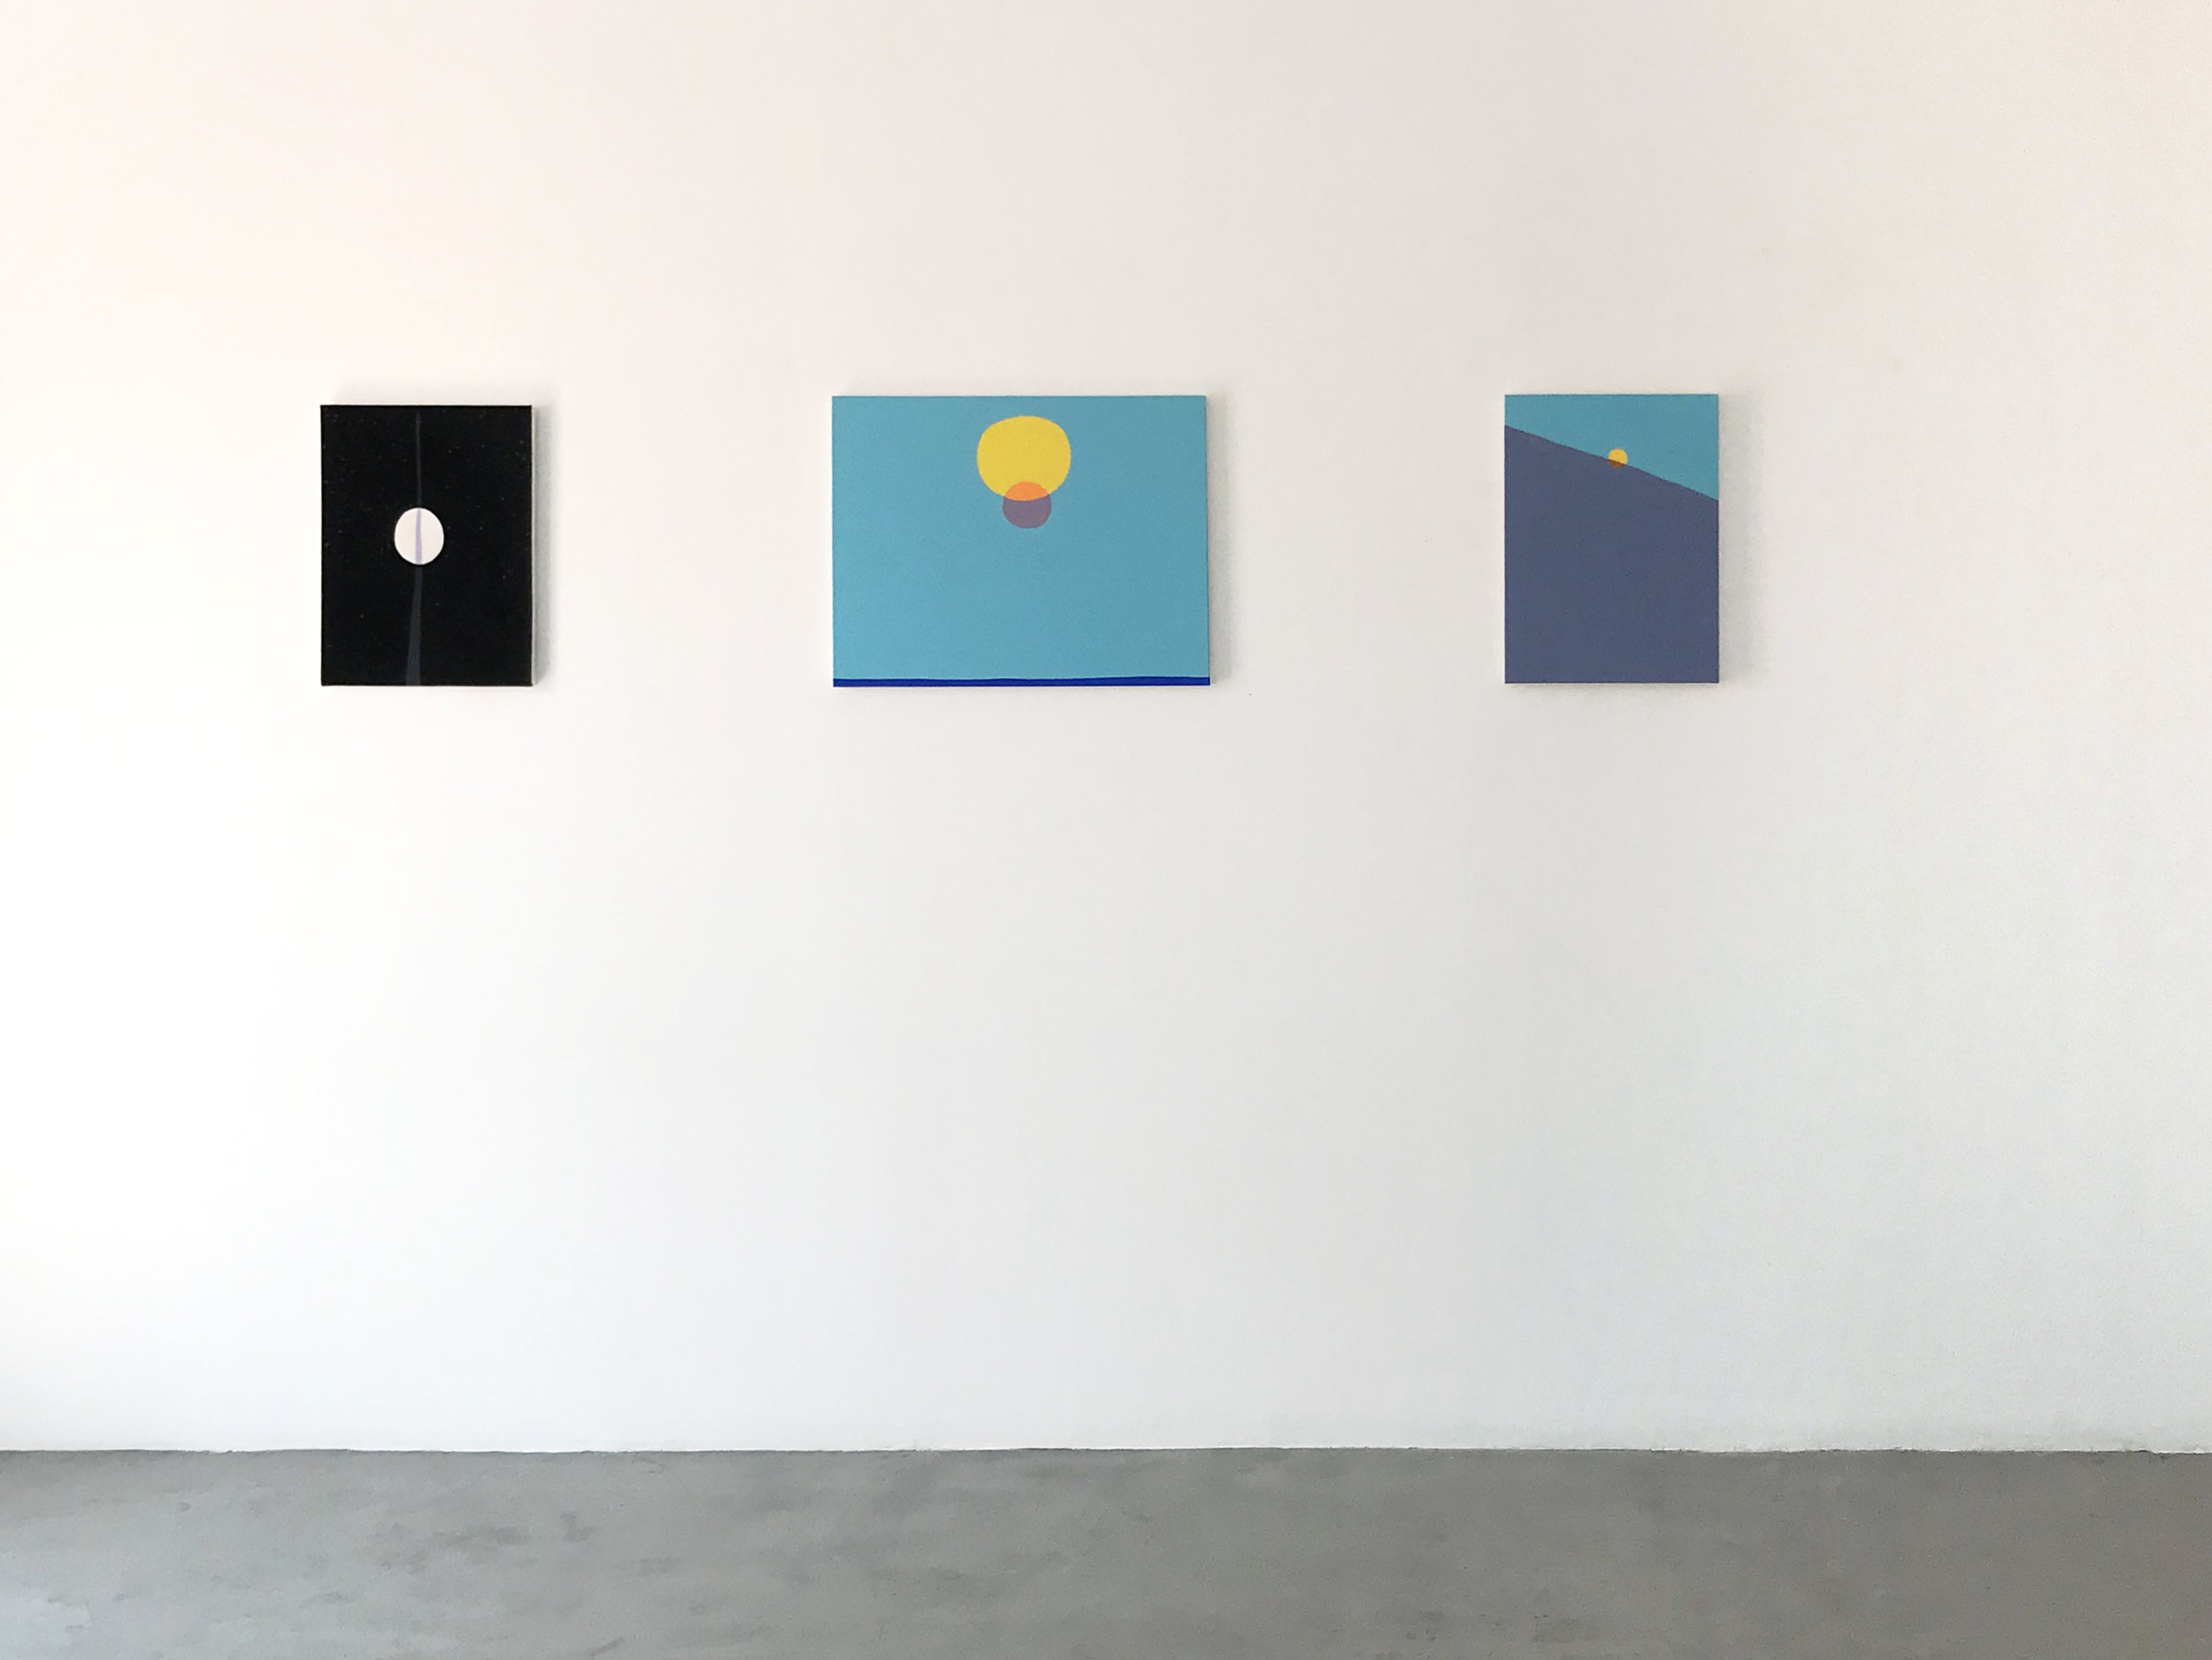 Peter McDonald_This, that and the other_Moon2, Sun, Sun 2_installation shot_2018.jpg